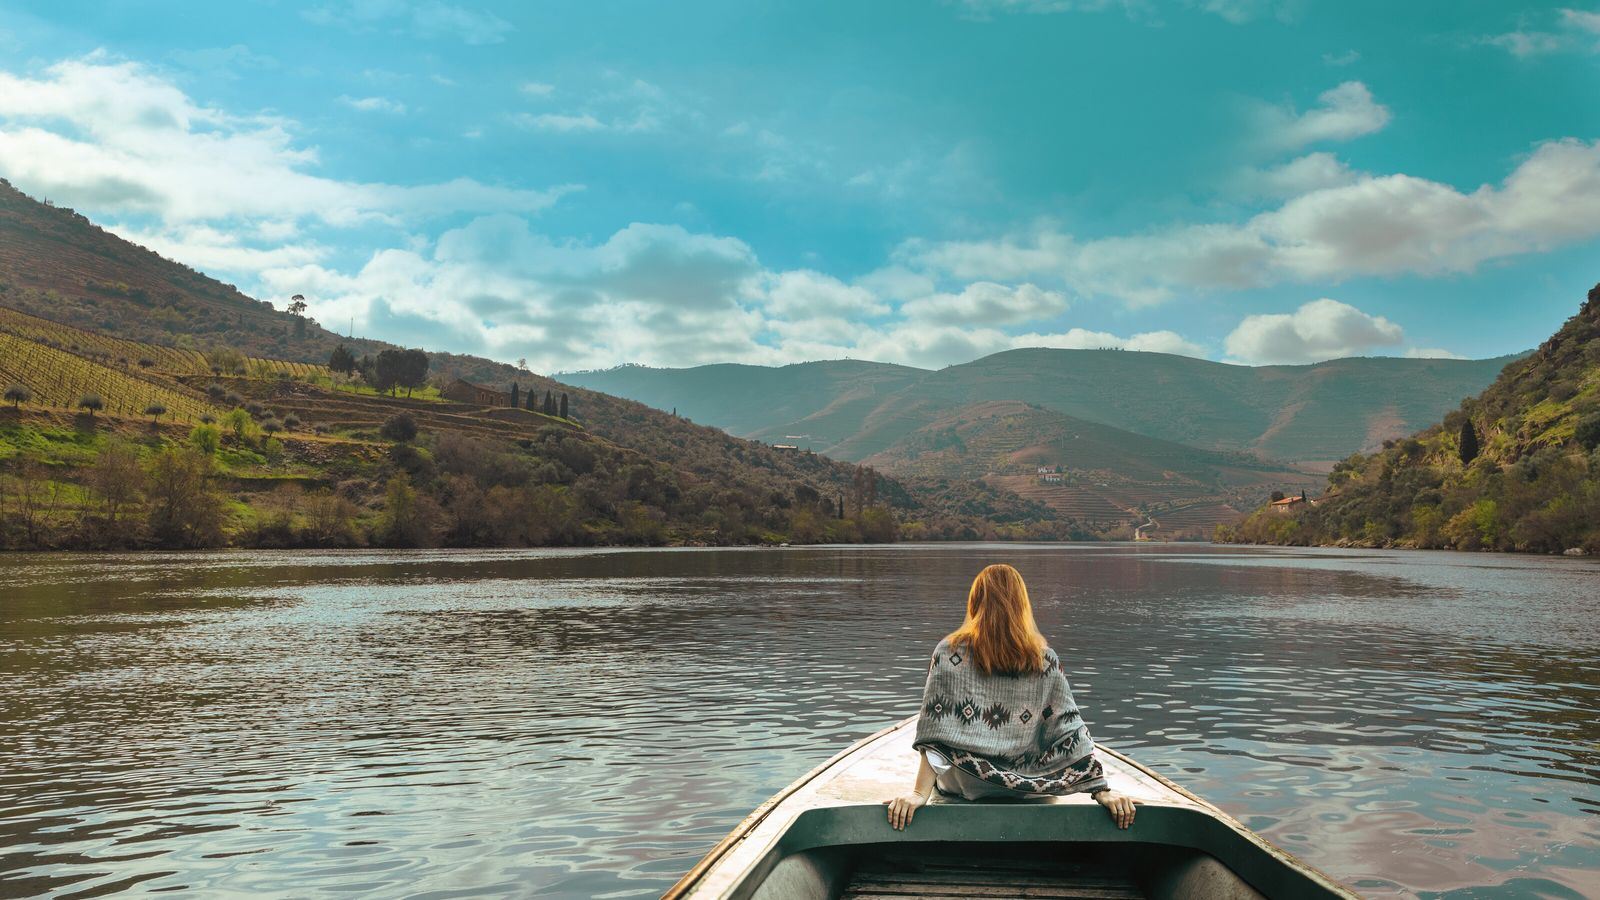 The Douro is the third largest river in the Iberian Peninsula.